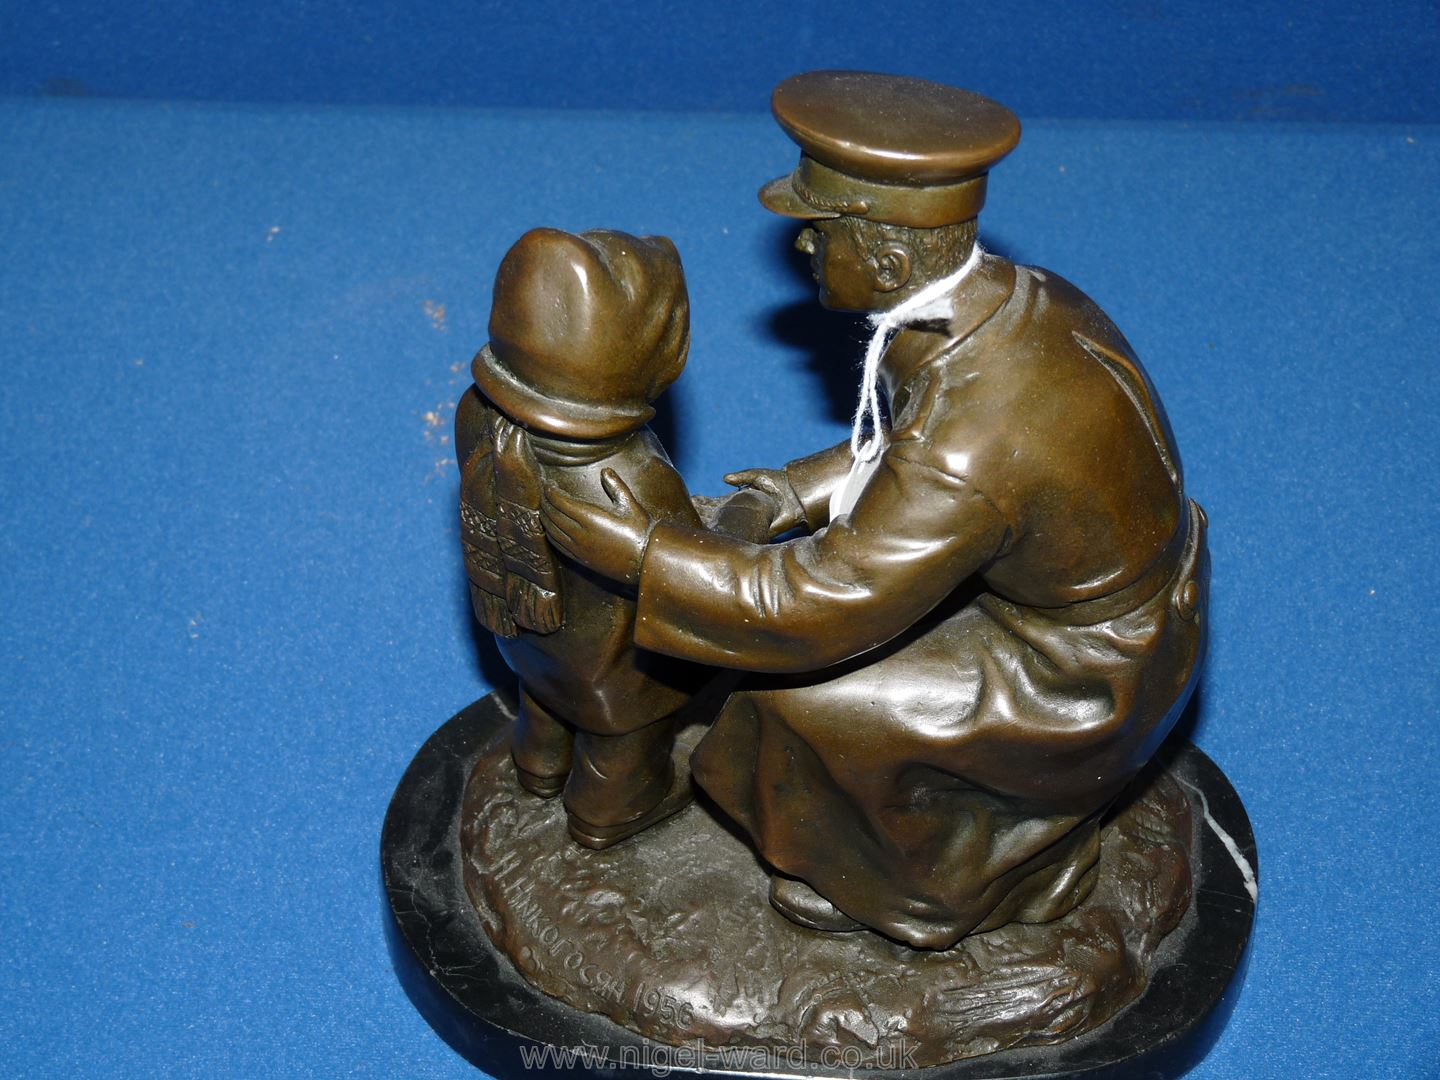 A Bronze figure of a soldier helping a young child, on marble plinth, 'H. - Image 5 of 5